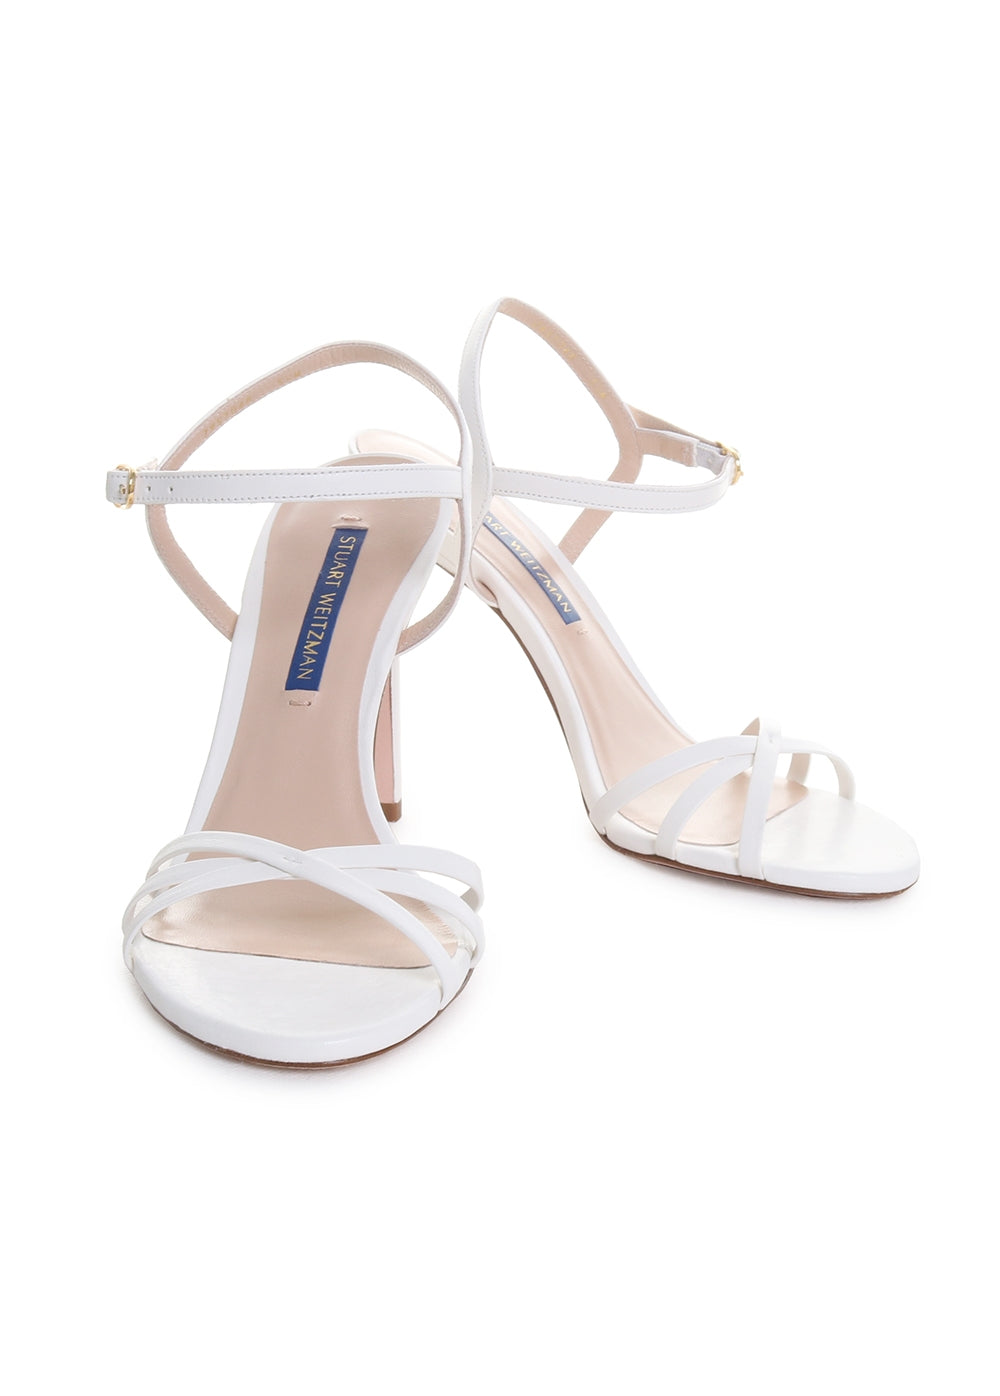 Starla 105 Patent Leather Heeled Sandals